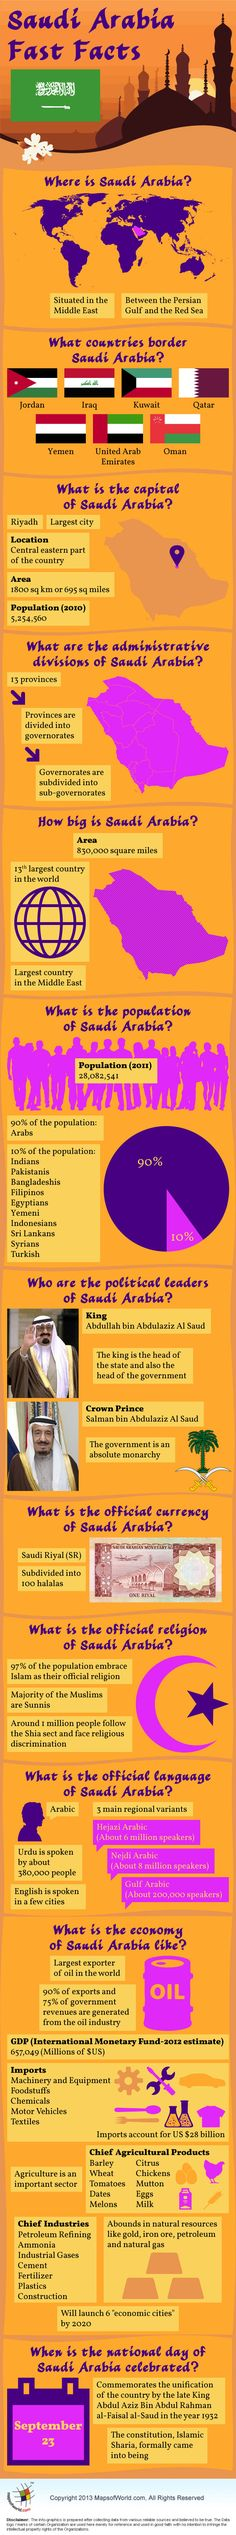 Infographic of Saudi Arabia Facts ...... Also, Go to RMR 4 awesome news!! ...  RMR4 INTERNATIONAL.INFO  ... Register for our Product Line Showcase Webinar  at:  www.rmr4international.info/500_tasty_diabetic_recipes.htm    ... Don't miss it!